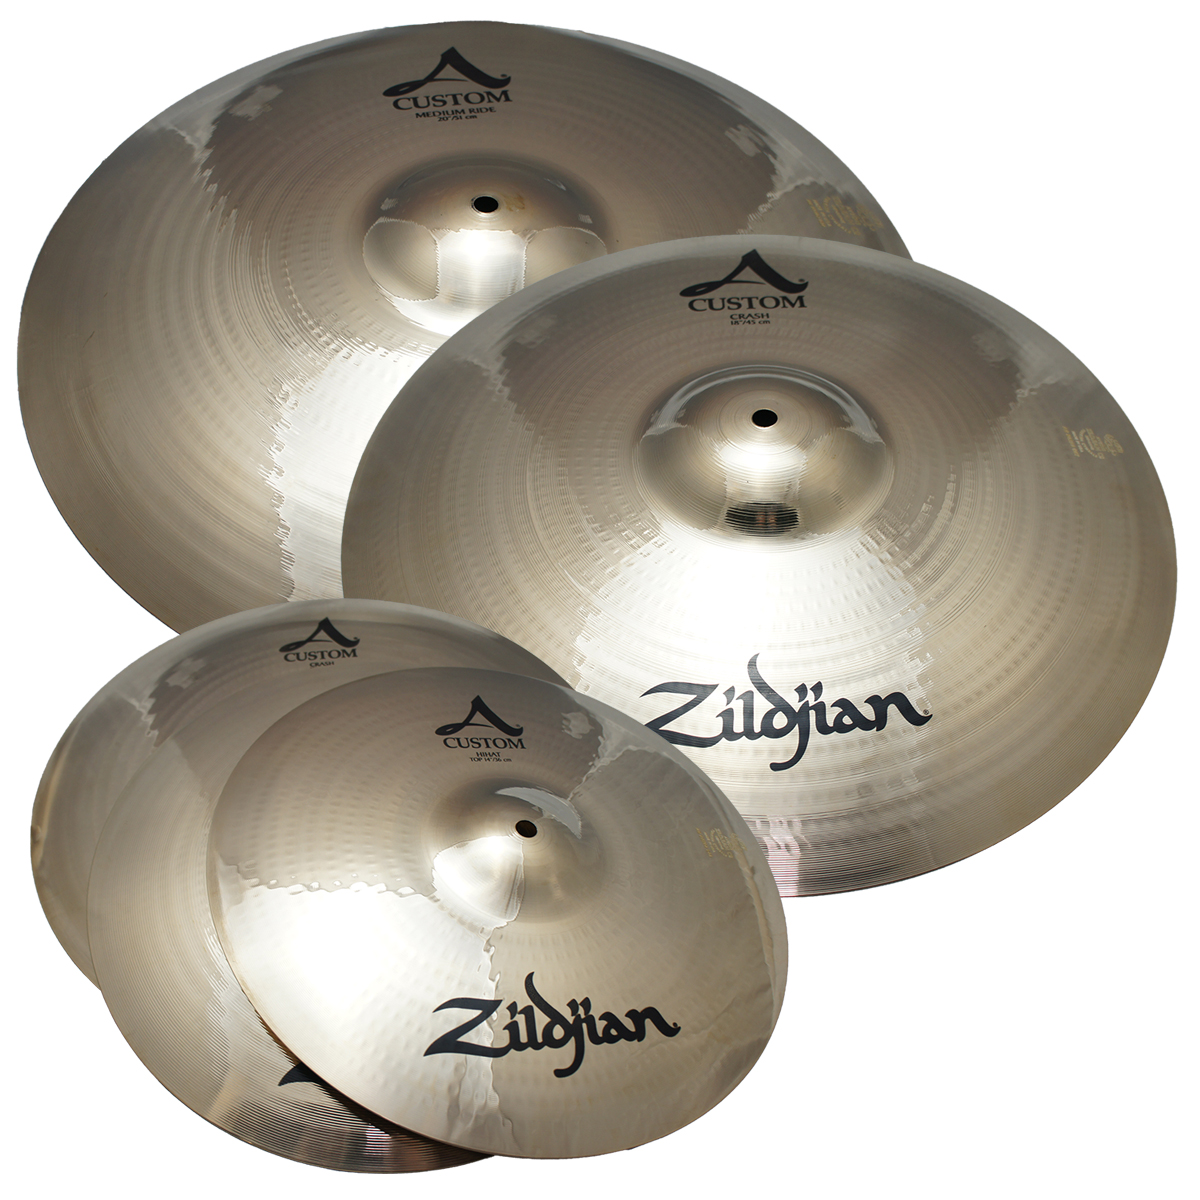 "Zildjian A20579-11 A Custom 4 Pack Matched Set Value Added 18"" Crash Cast Bronze Drumset Cymbals - Limited Quanities!"